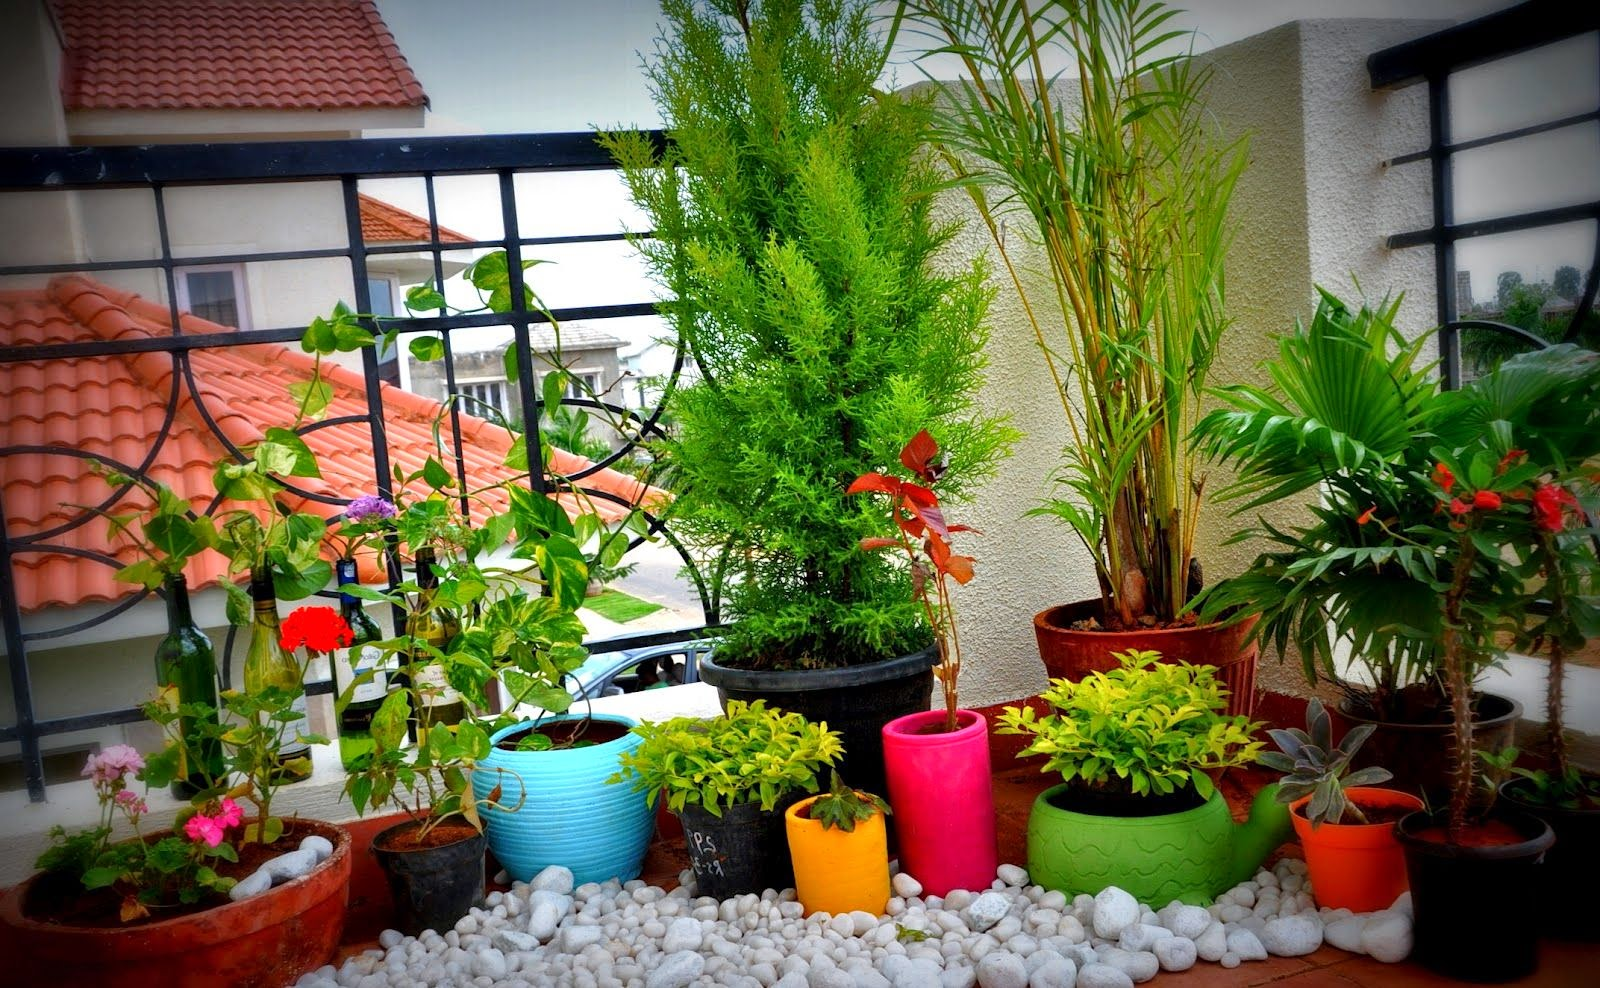 Home garden design for small spaces for Landscape gardening for small gardens